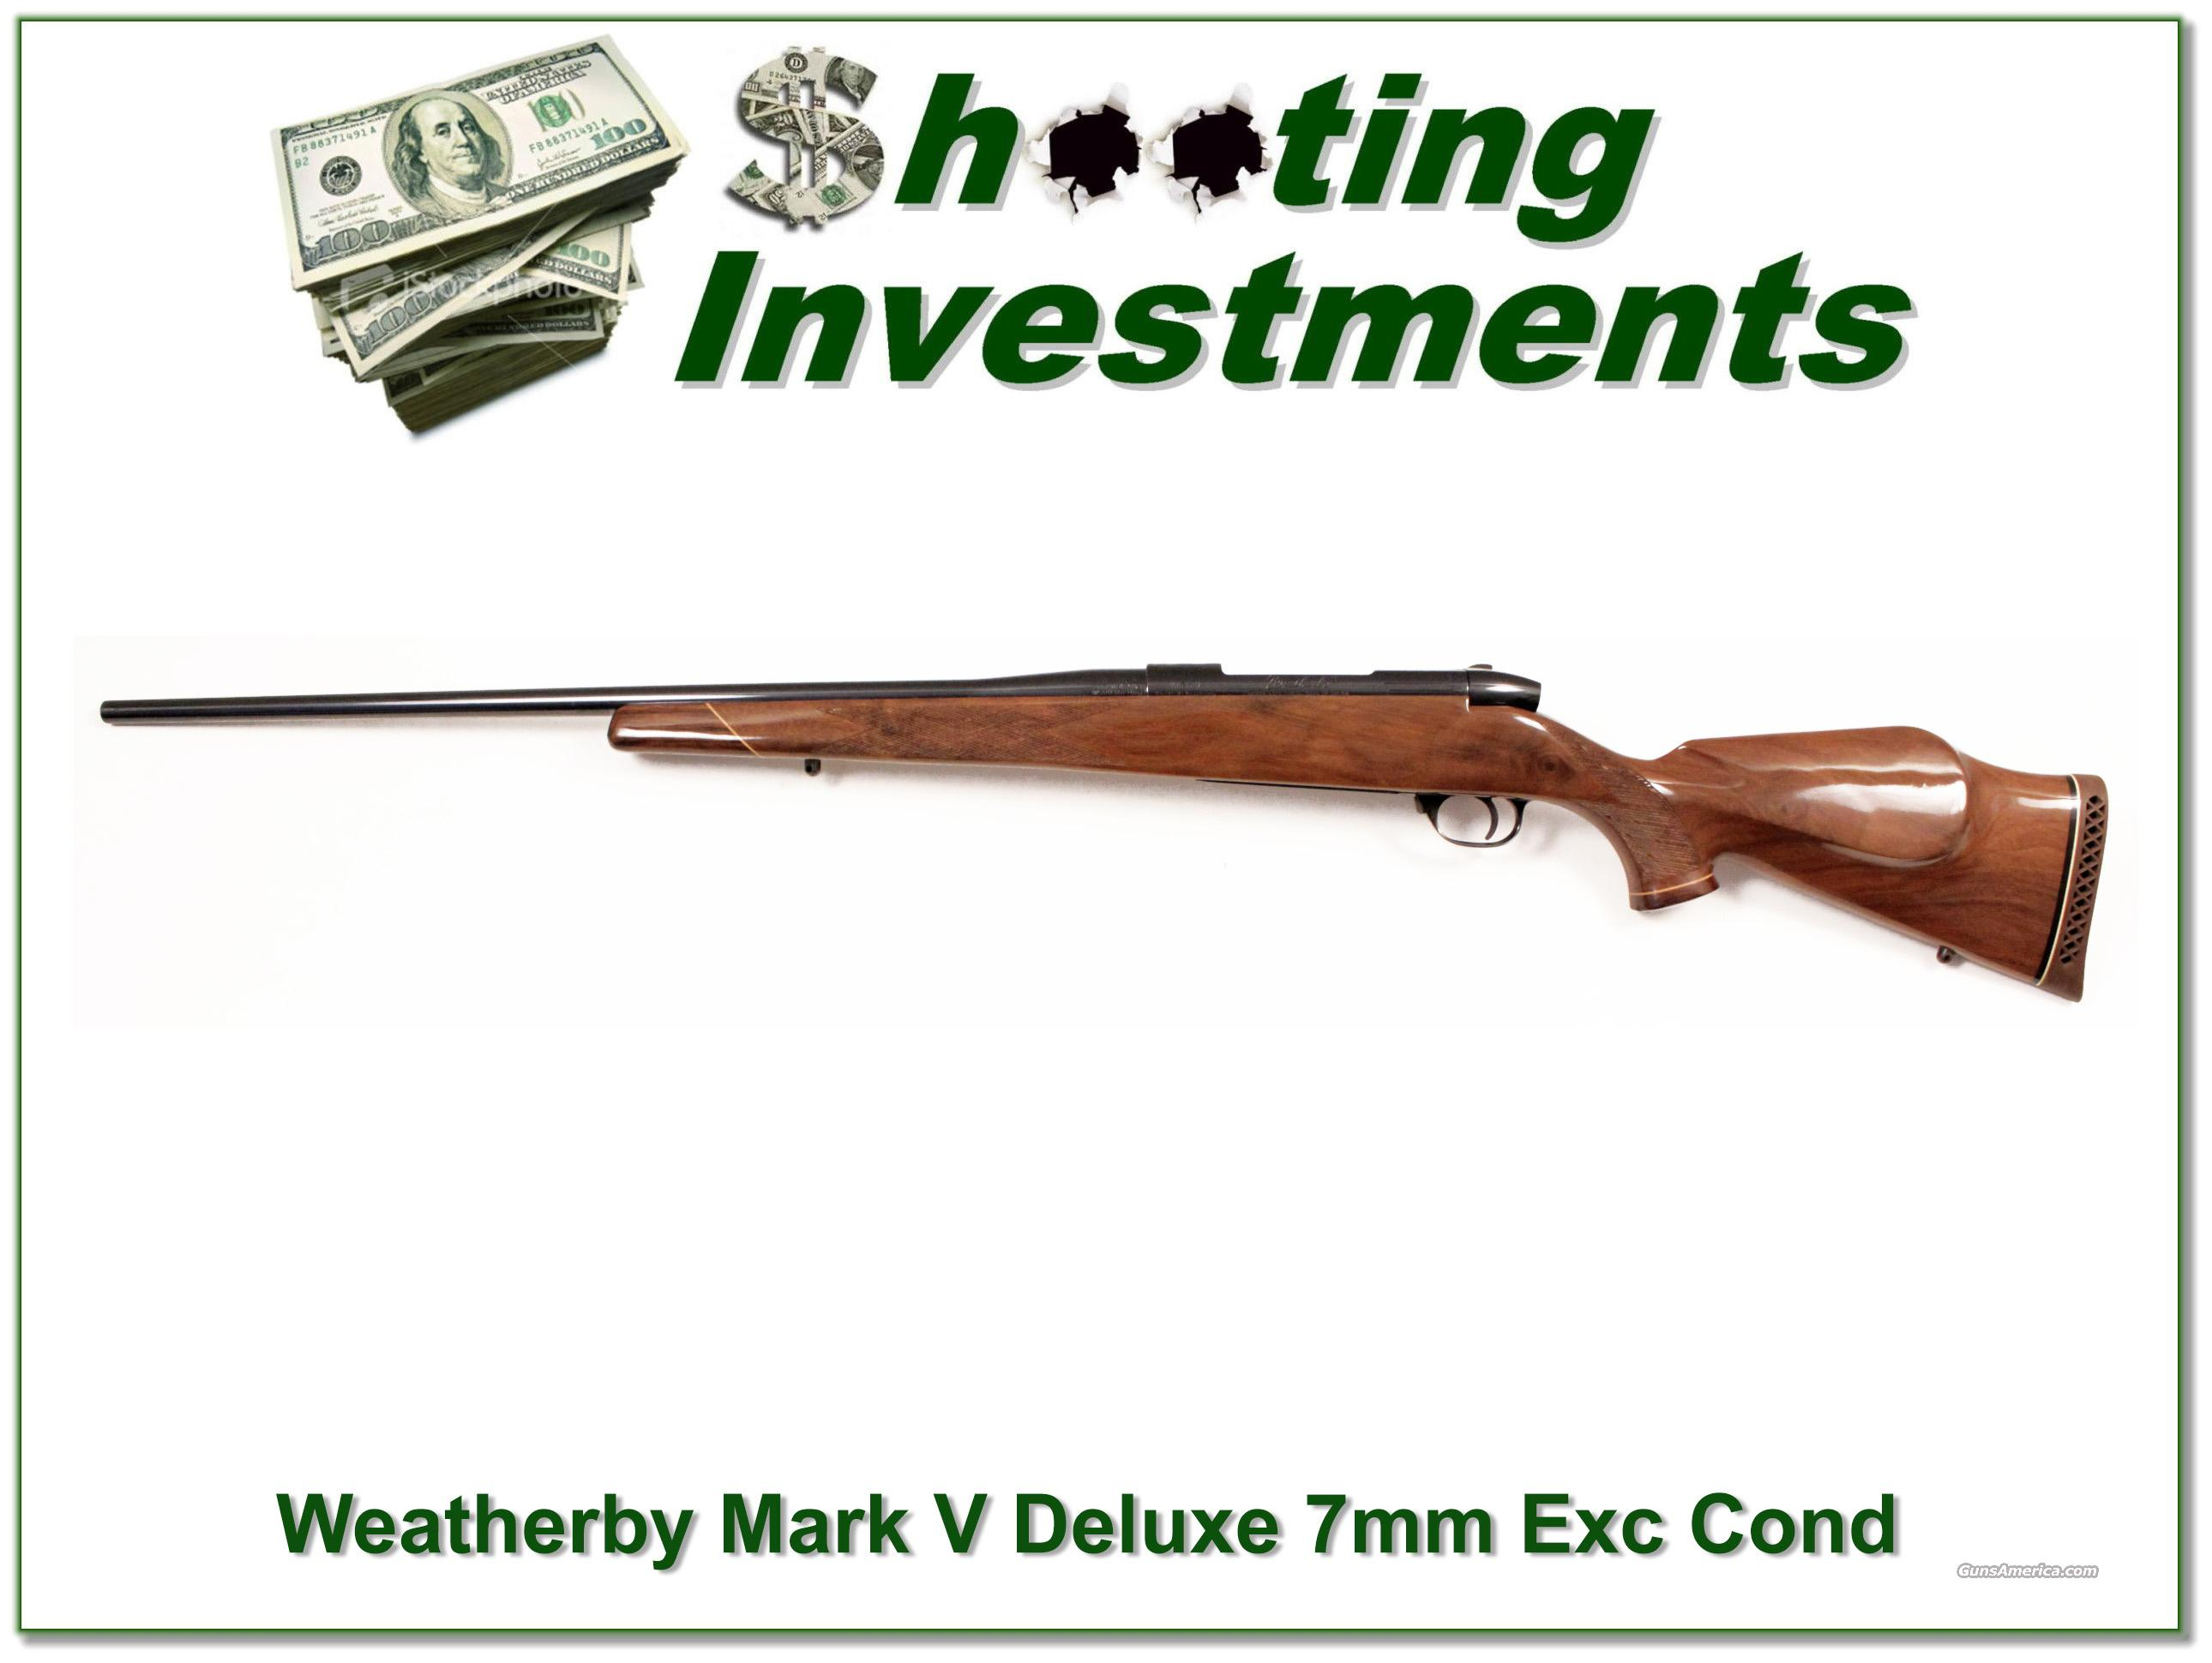 Weatherby Mark V Deluxe 7mm Wthy Exc Cond  Guns > Rifles > Weatherby Rifles > Sporting